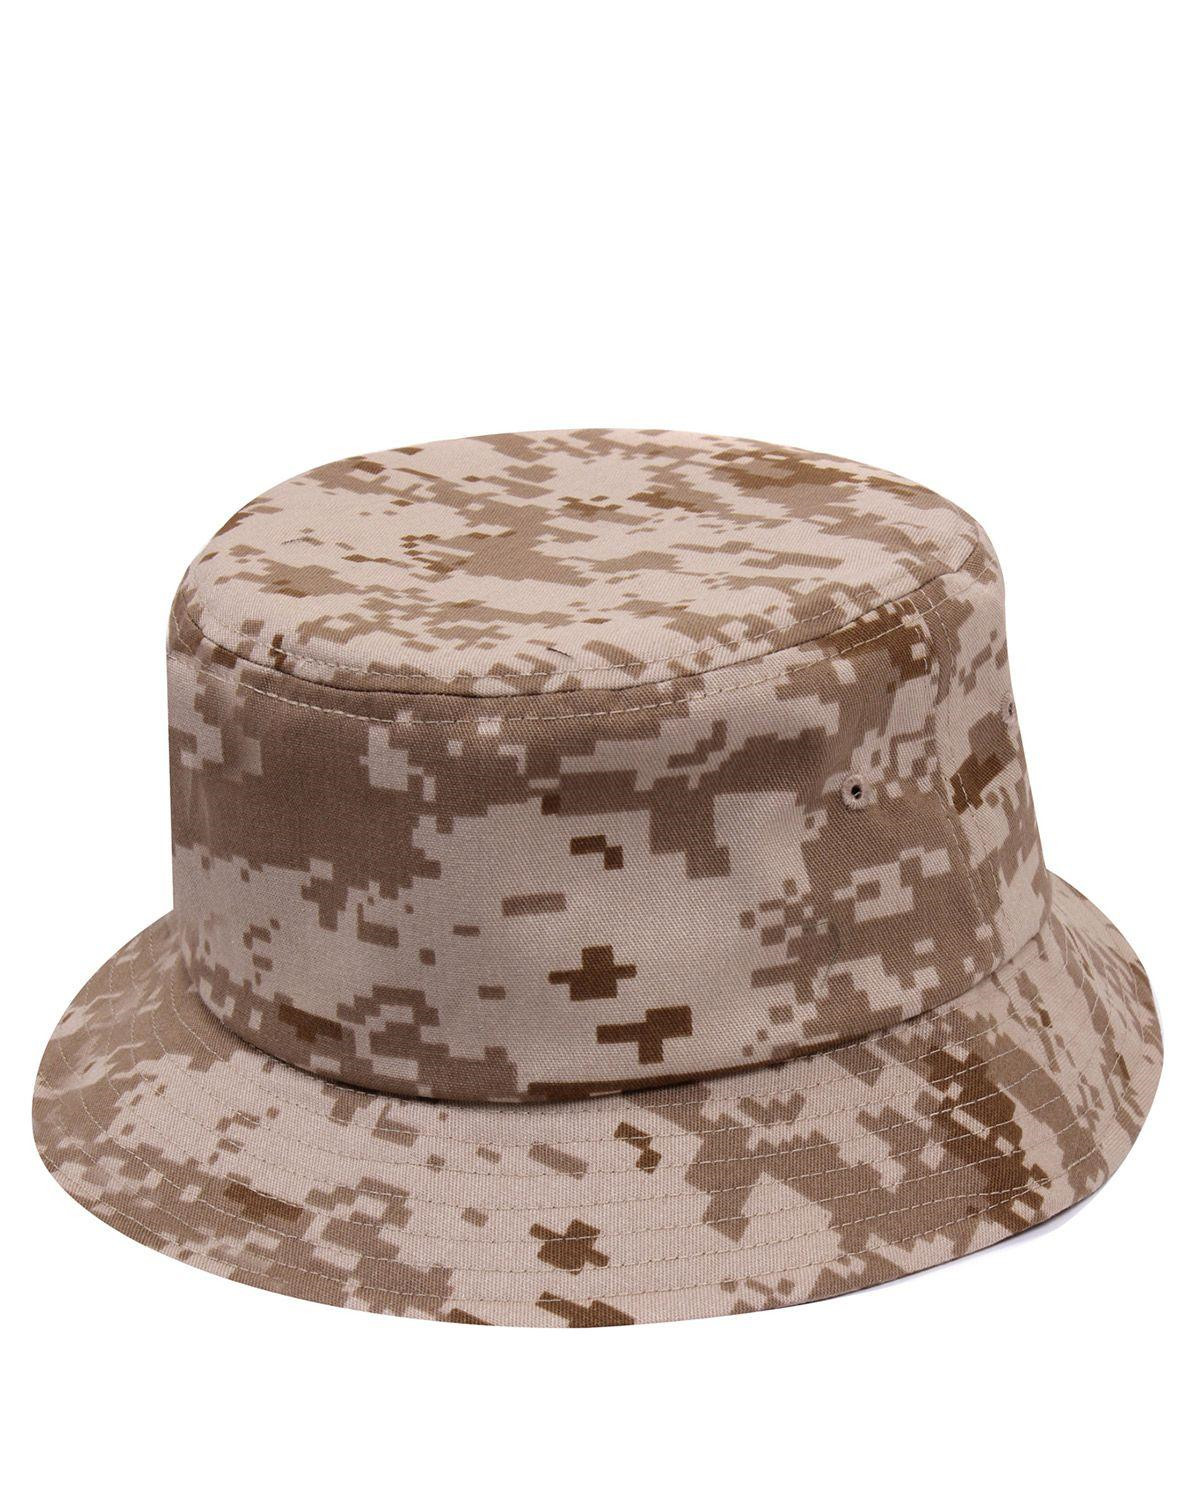 Image of   Rothco Bucket Hat (Desert Digital Camo, L/XL)